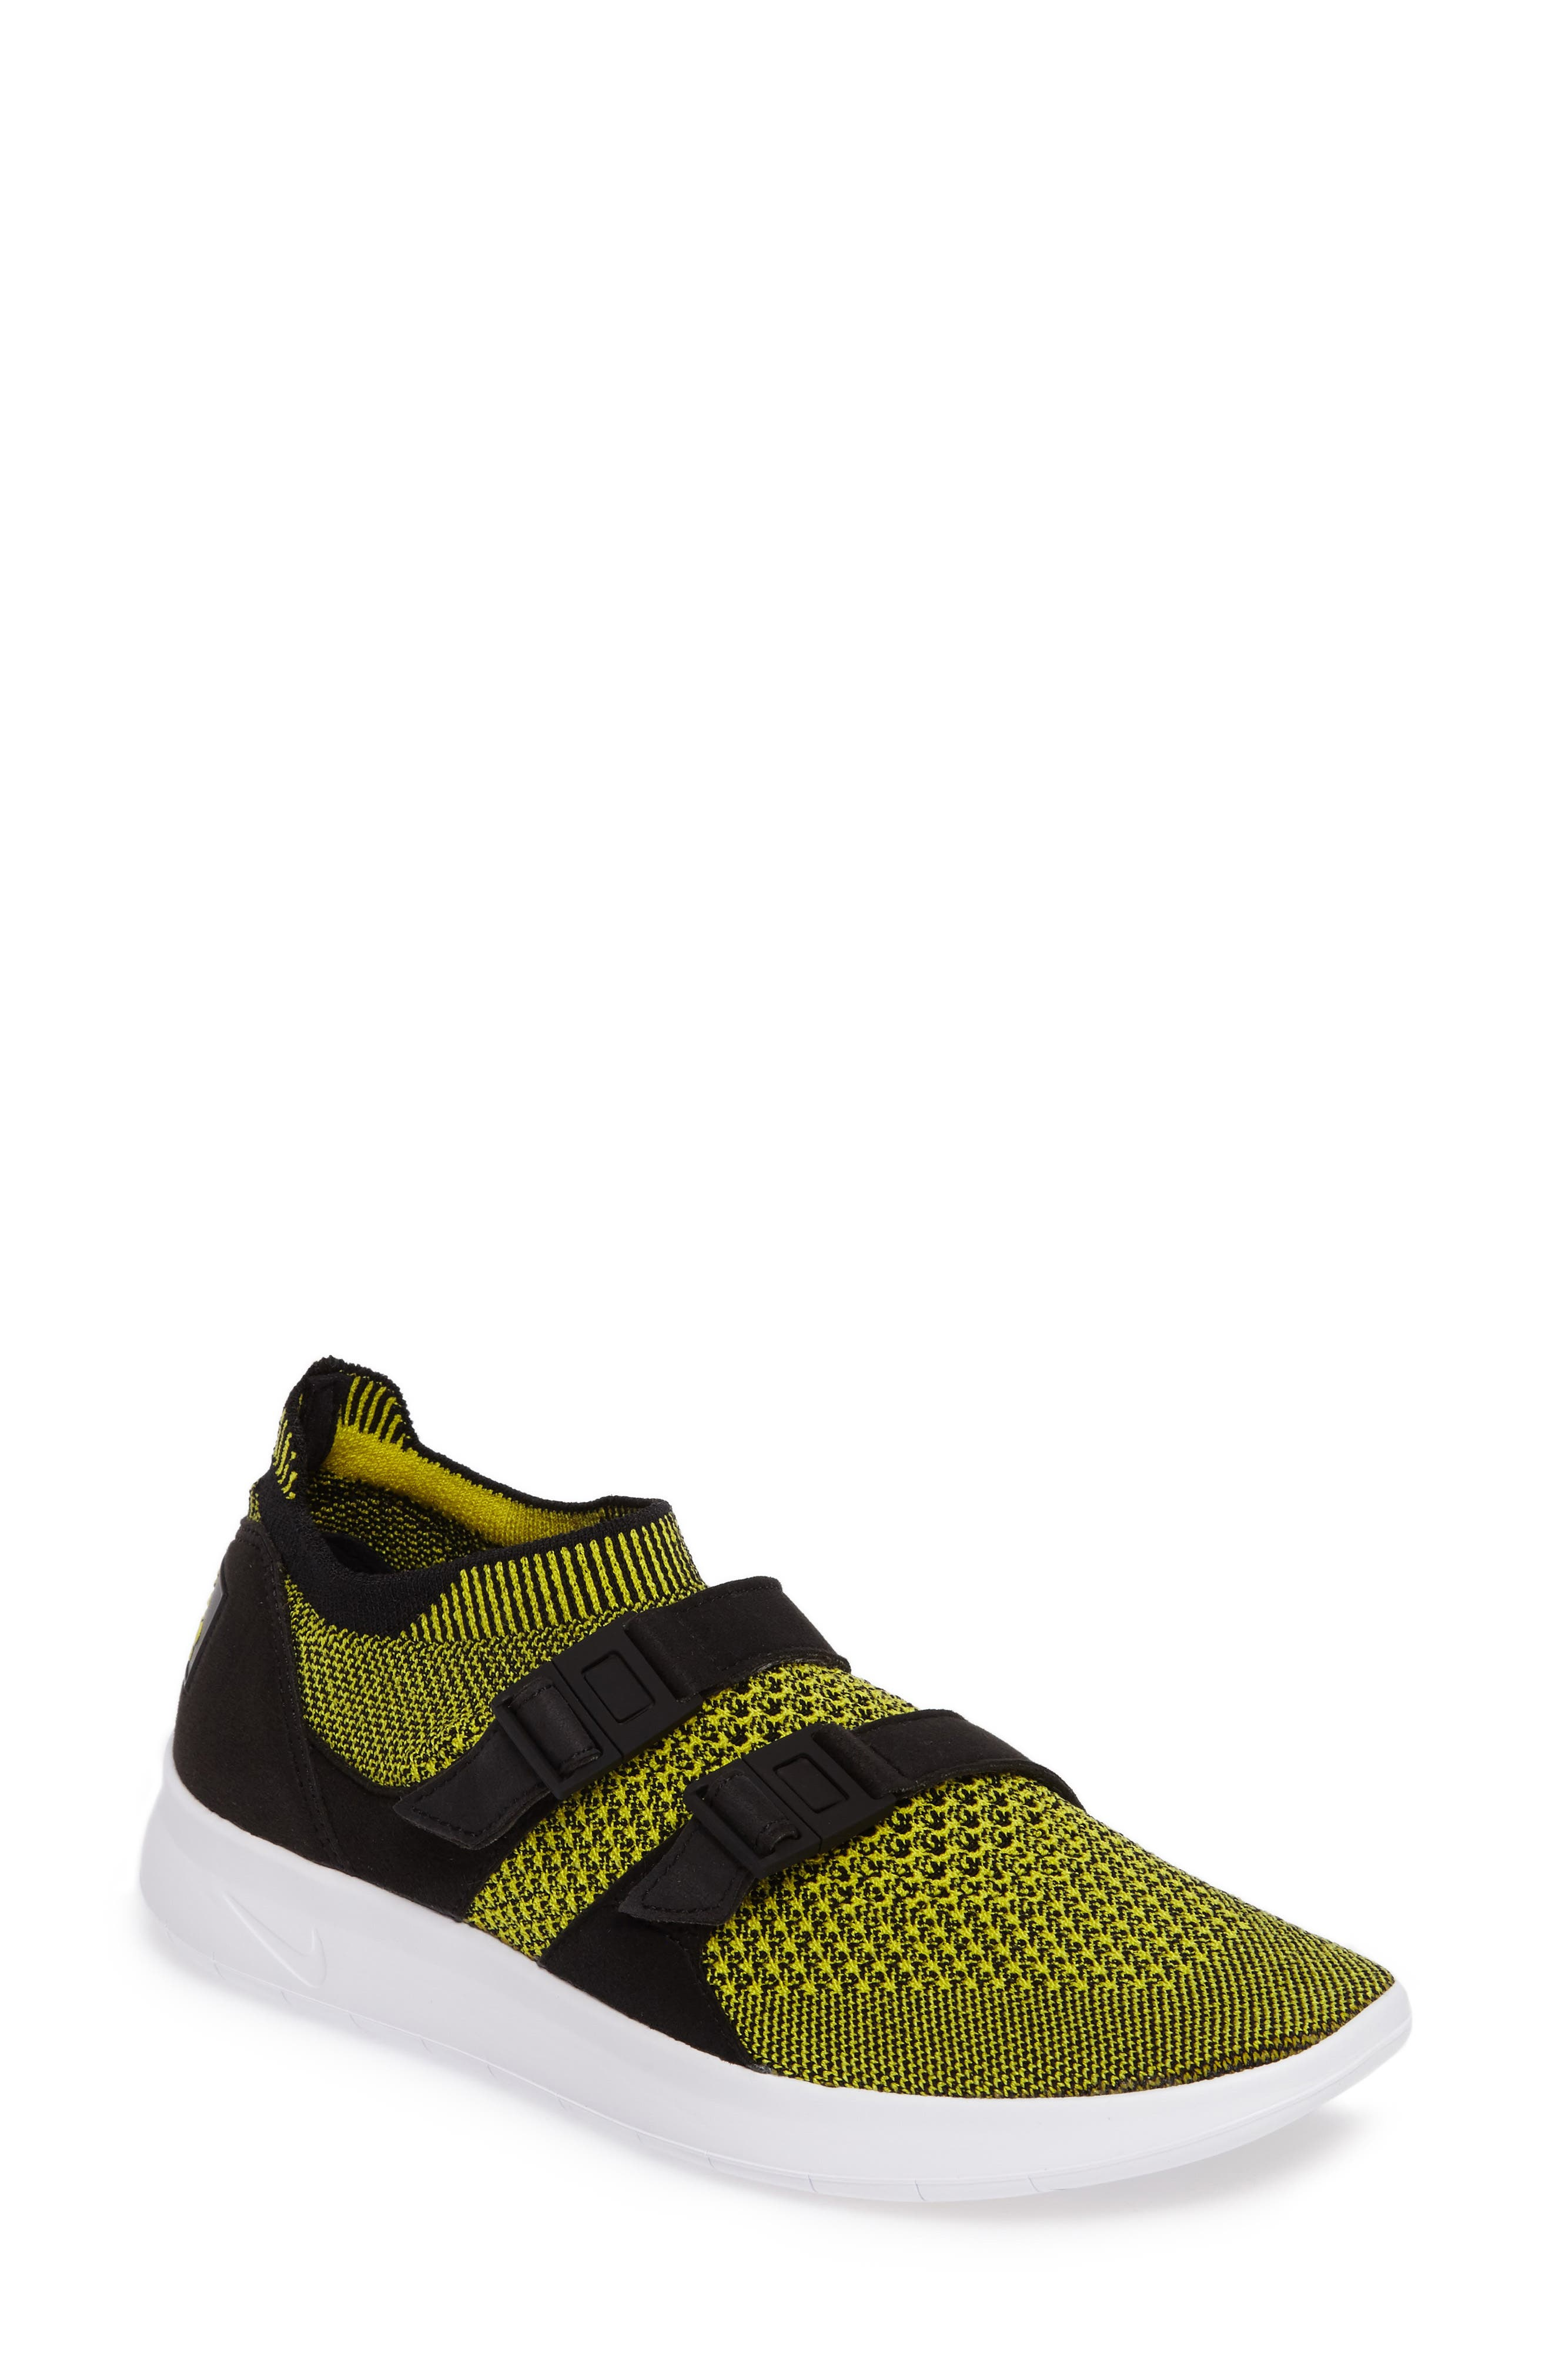 Alternate Image 1 Selected - Nike Air Sock Racer Ultra Flyknit Sneaker (Women)